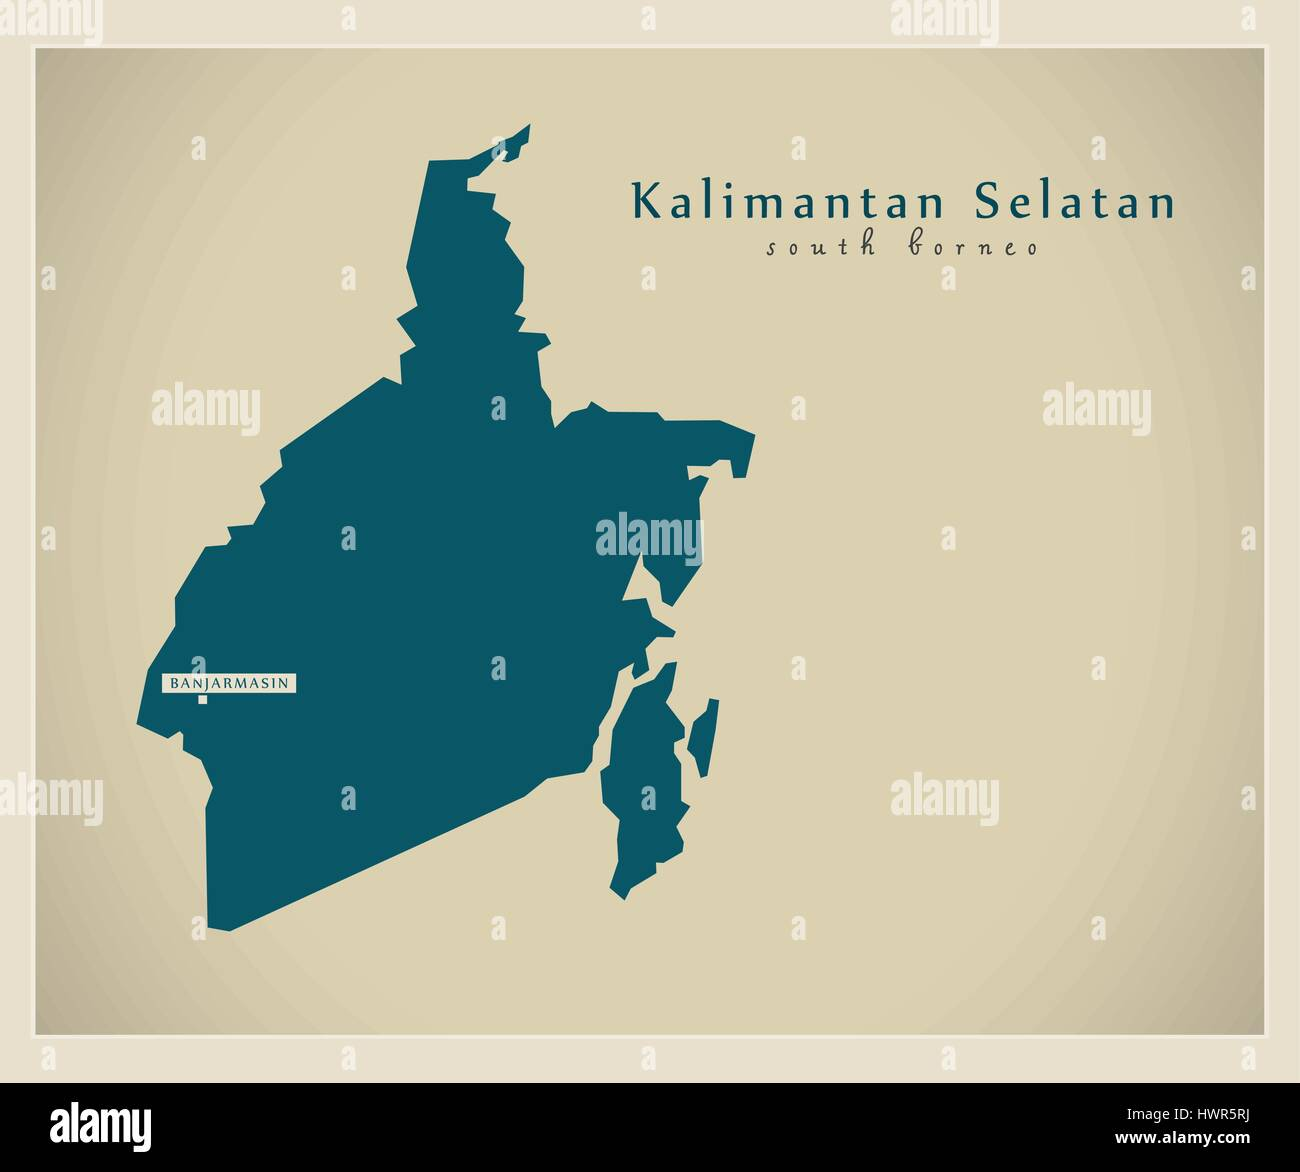 kalimantan vector vectors high resolution stock photography and images alamy https www alamy com stock photo modern map kalimantan selatan id 136348454 html